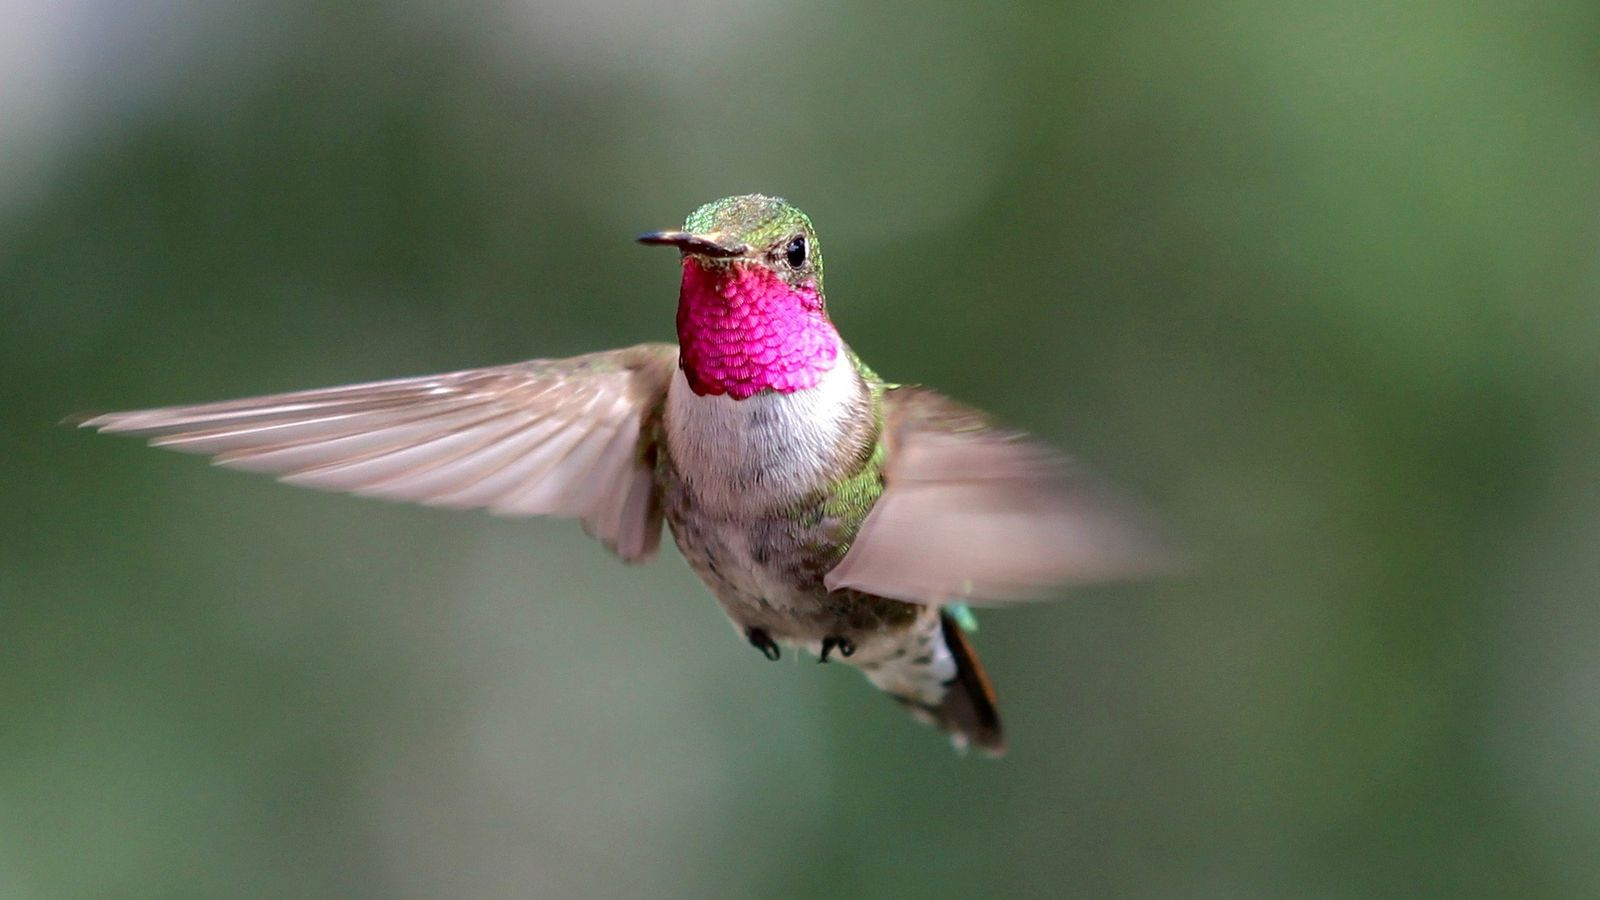 A male broad-tailed hummingbird flies in Colorado as part of an experiment on color vision.